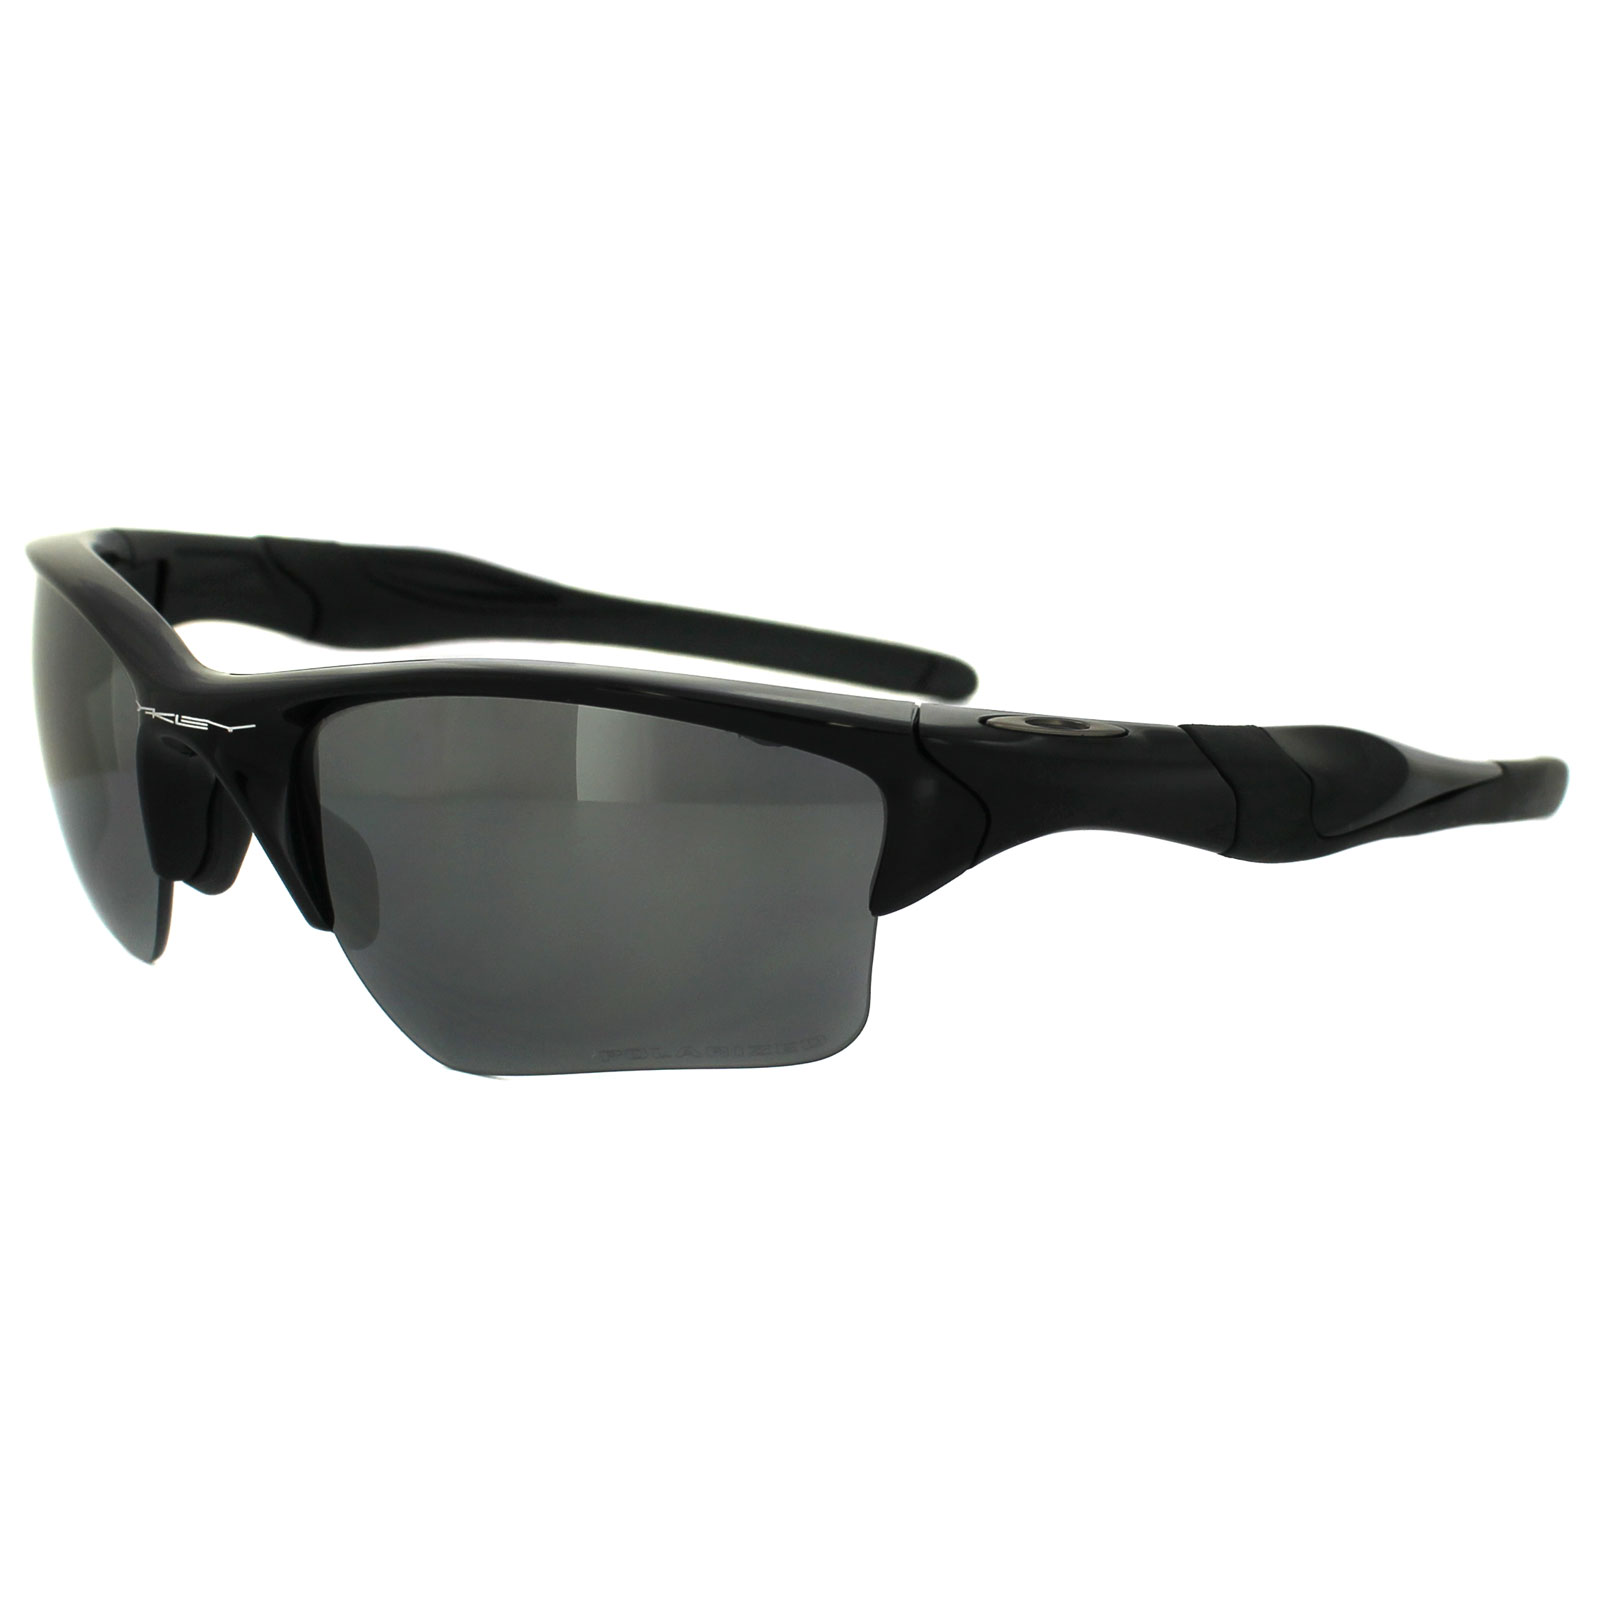 6b54d047ff Sentinel Oakley Sunglasses Half Jacket 2.0 XL Polished Black Iridium  Polarized OO9154-05. Sentinel Thumbnail 2